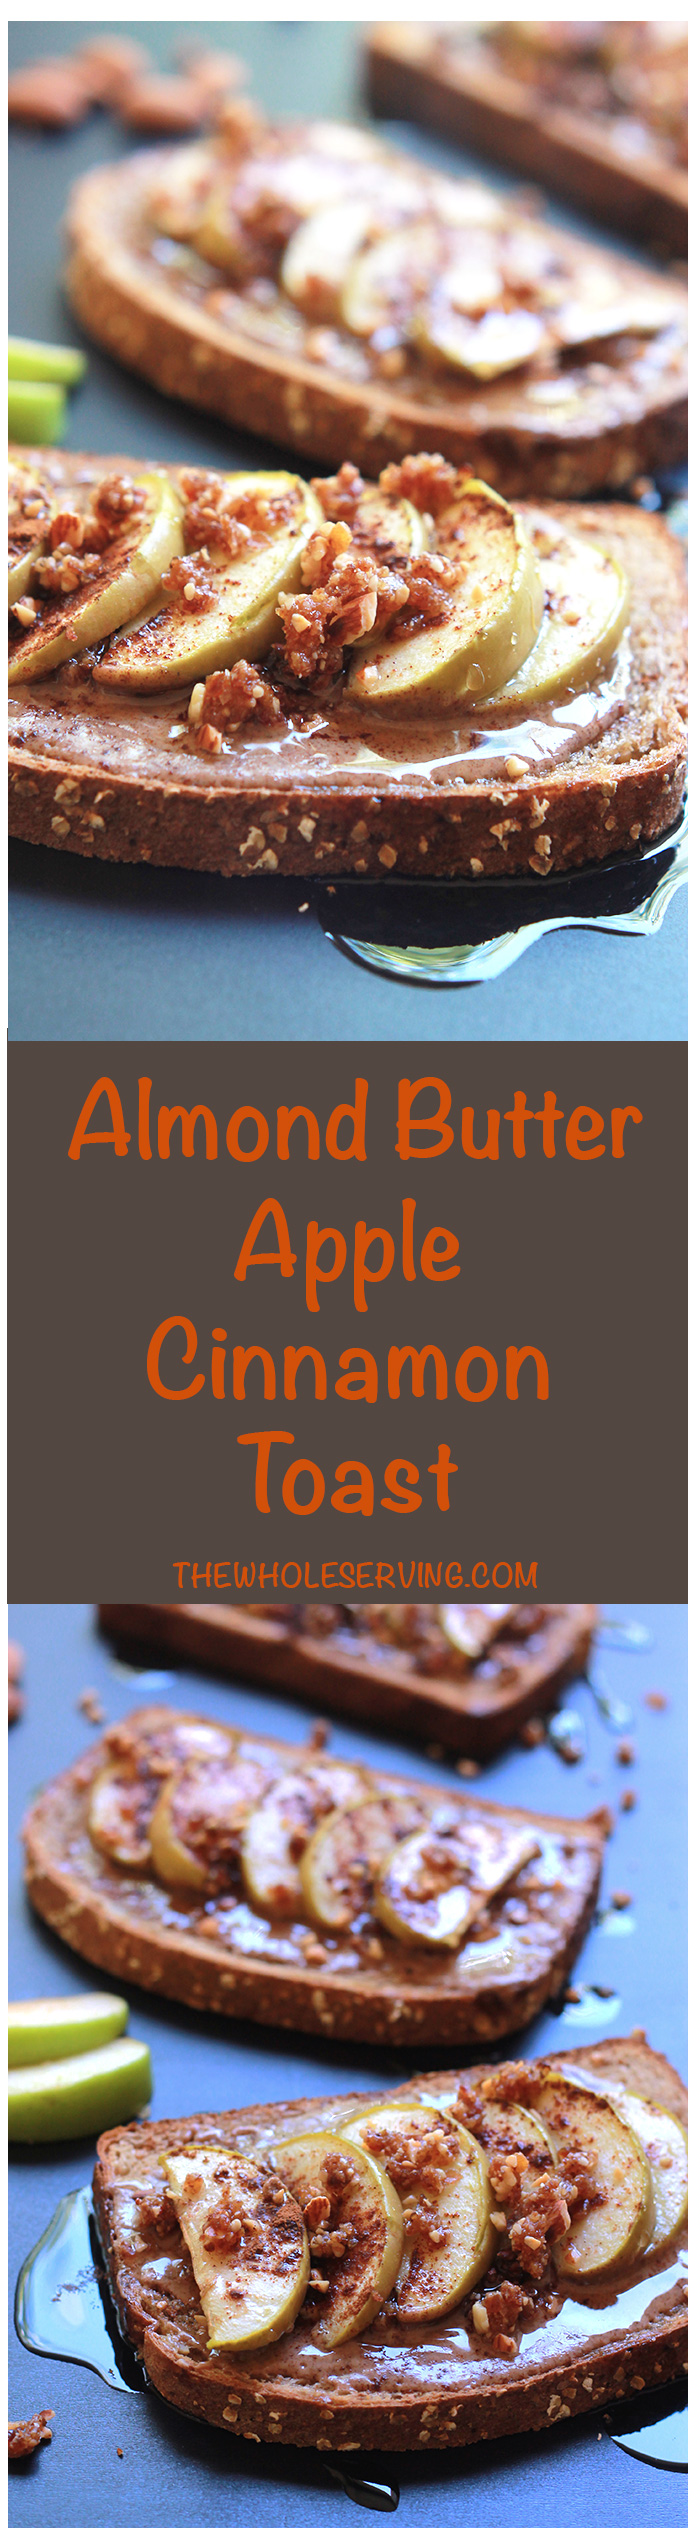 Think Cinnamon toast, but with almond butter, apple slices a touch of sweetness from an almond date crumble and a final drizzling of agave. Almond Butter Apple Cinnamon Toast is my twist on an old after-school favorite.